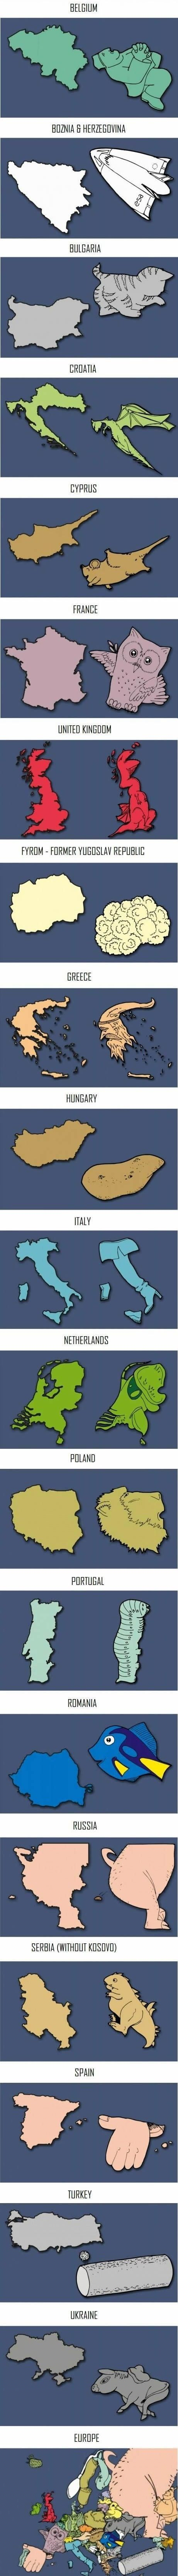 European Countries - Maybe an interesting way to help my students in Global Studies recognize the countries?